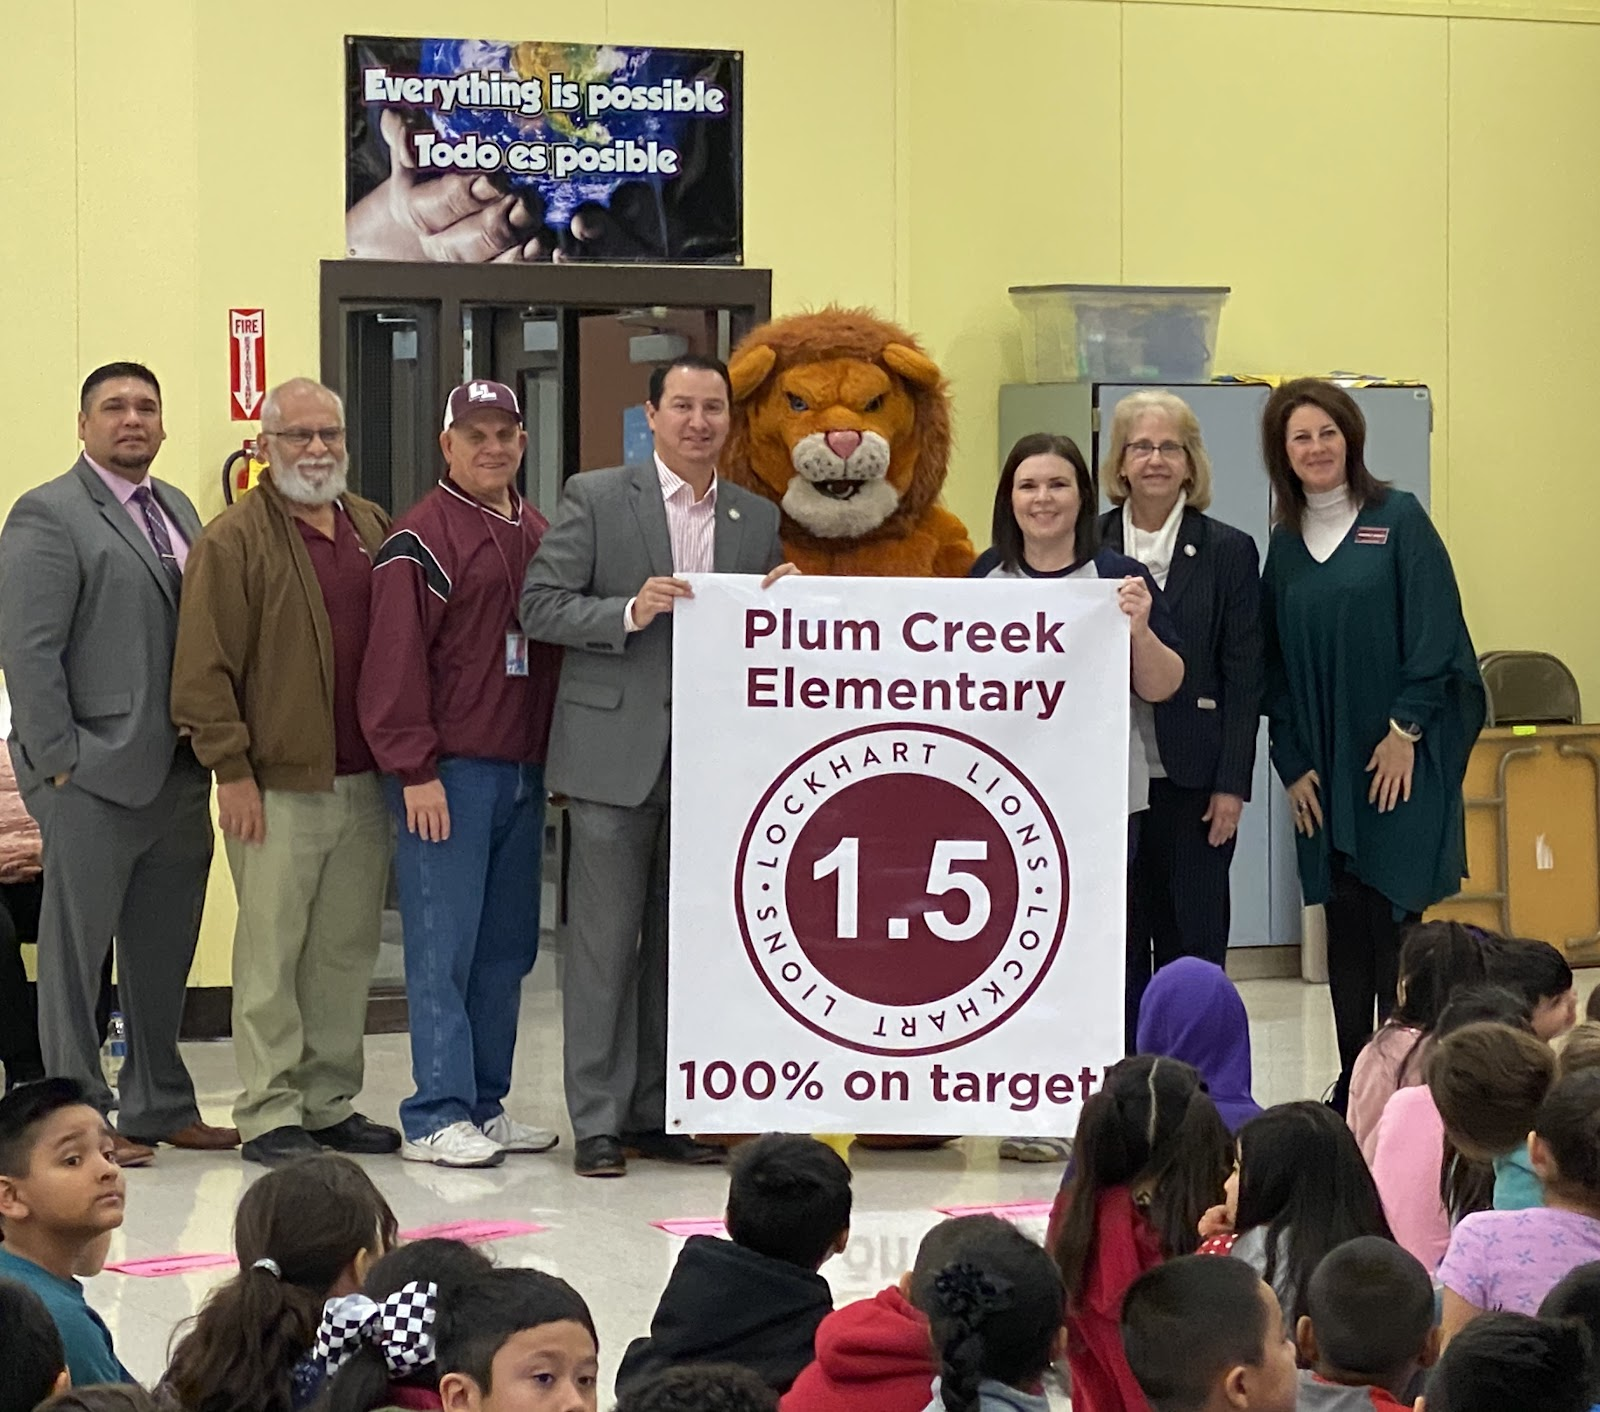 Plum Creek honored for reaching 100% target for 1.5